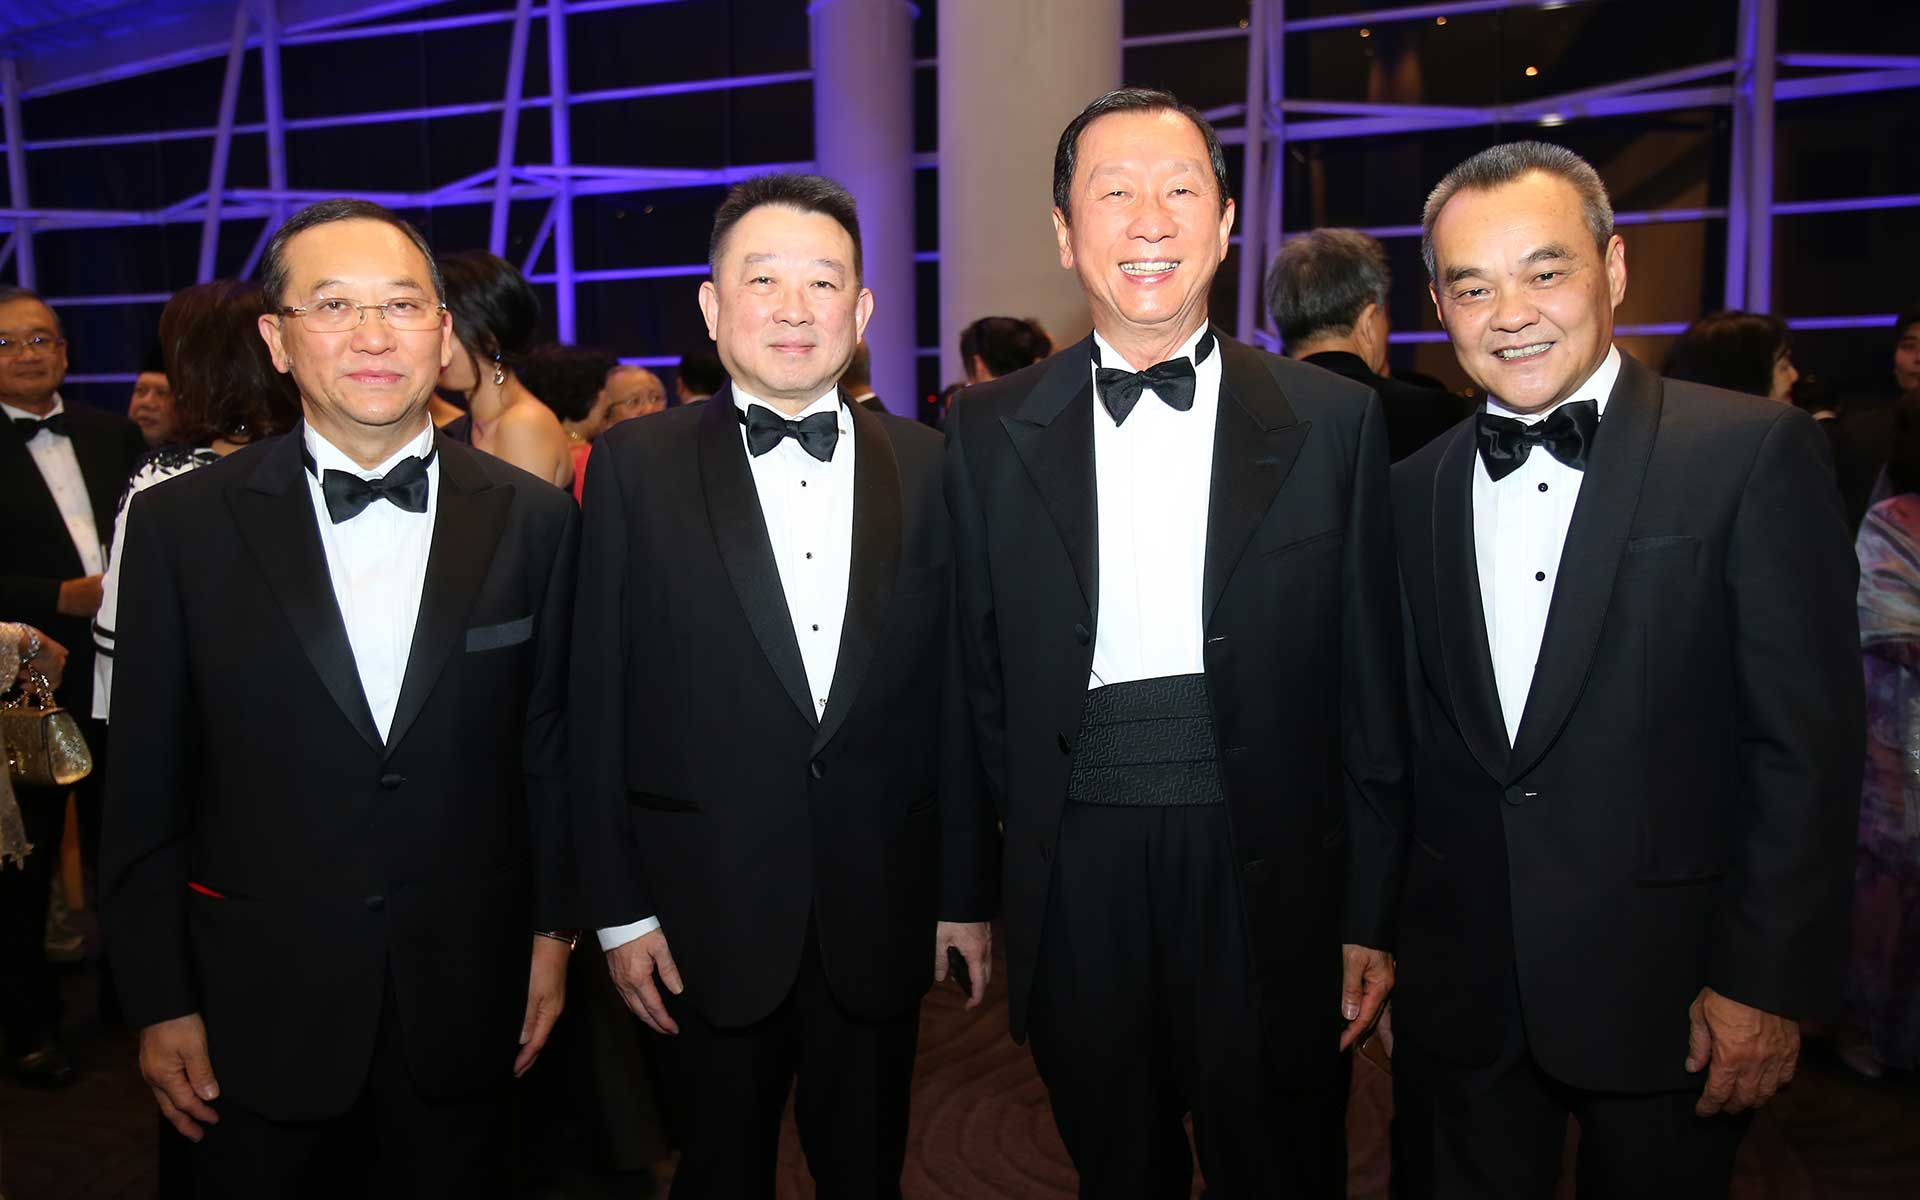 Tan Sri Leong Hoy Kim, Dato' Andrew Leong, Tan Sri Danny Tan and Dato' Eric Ong